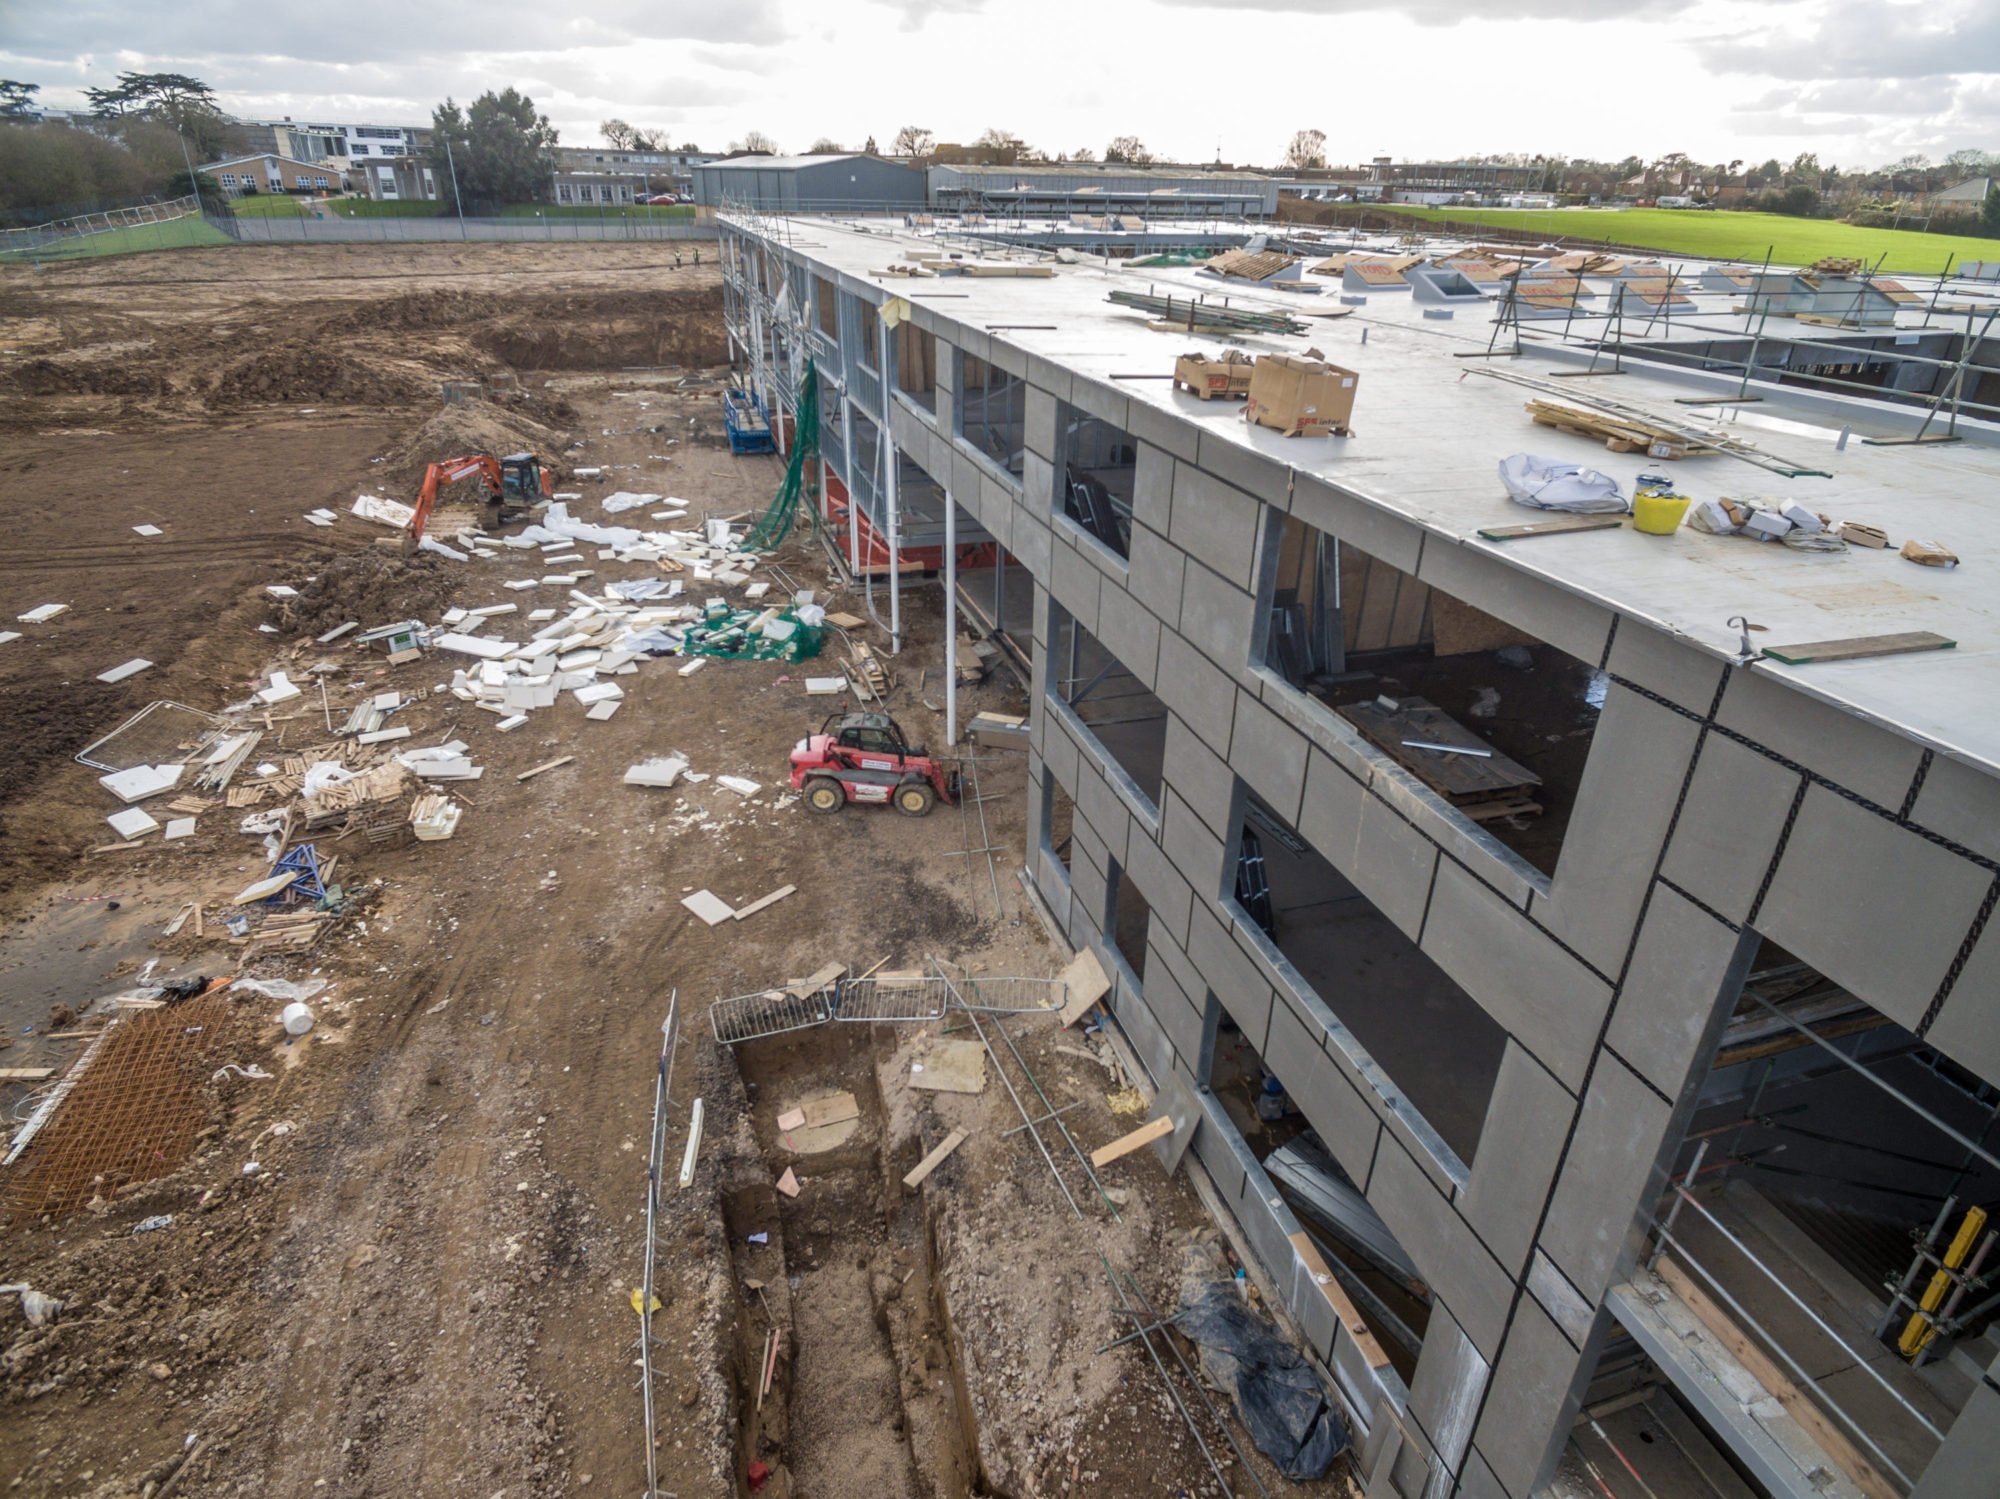 Drone Photography Documenting Construction Site Affected